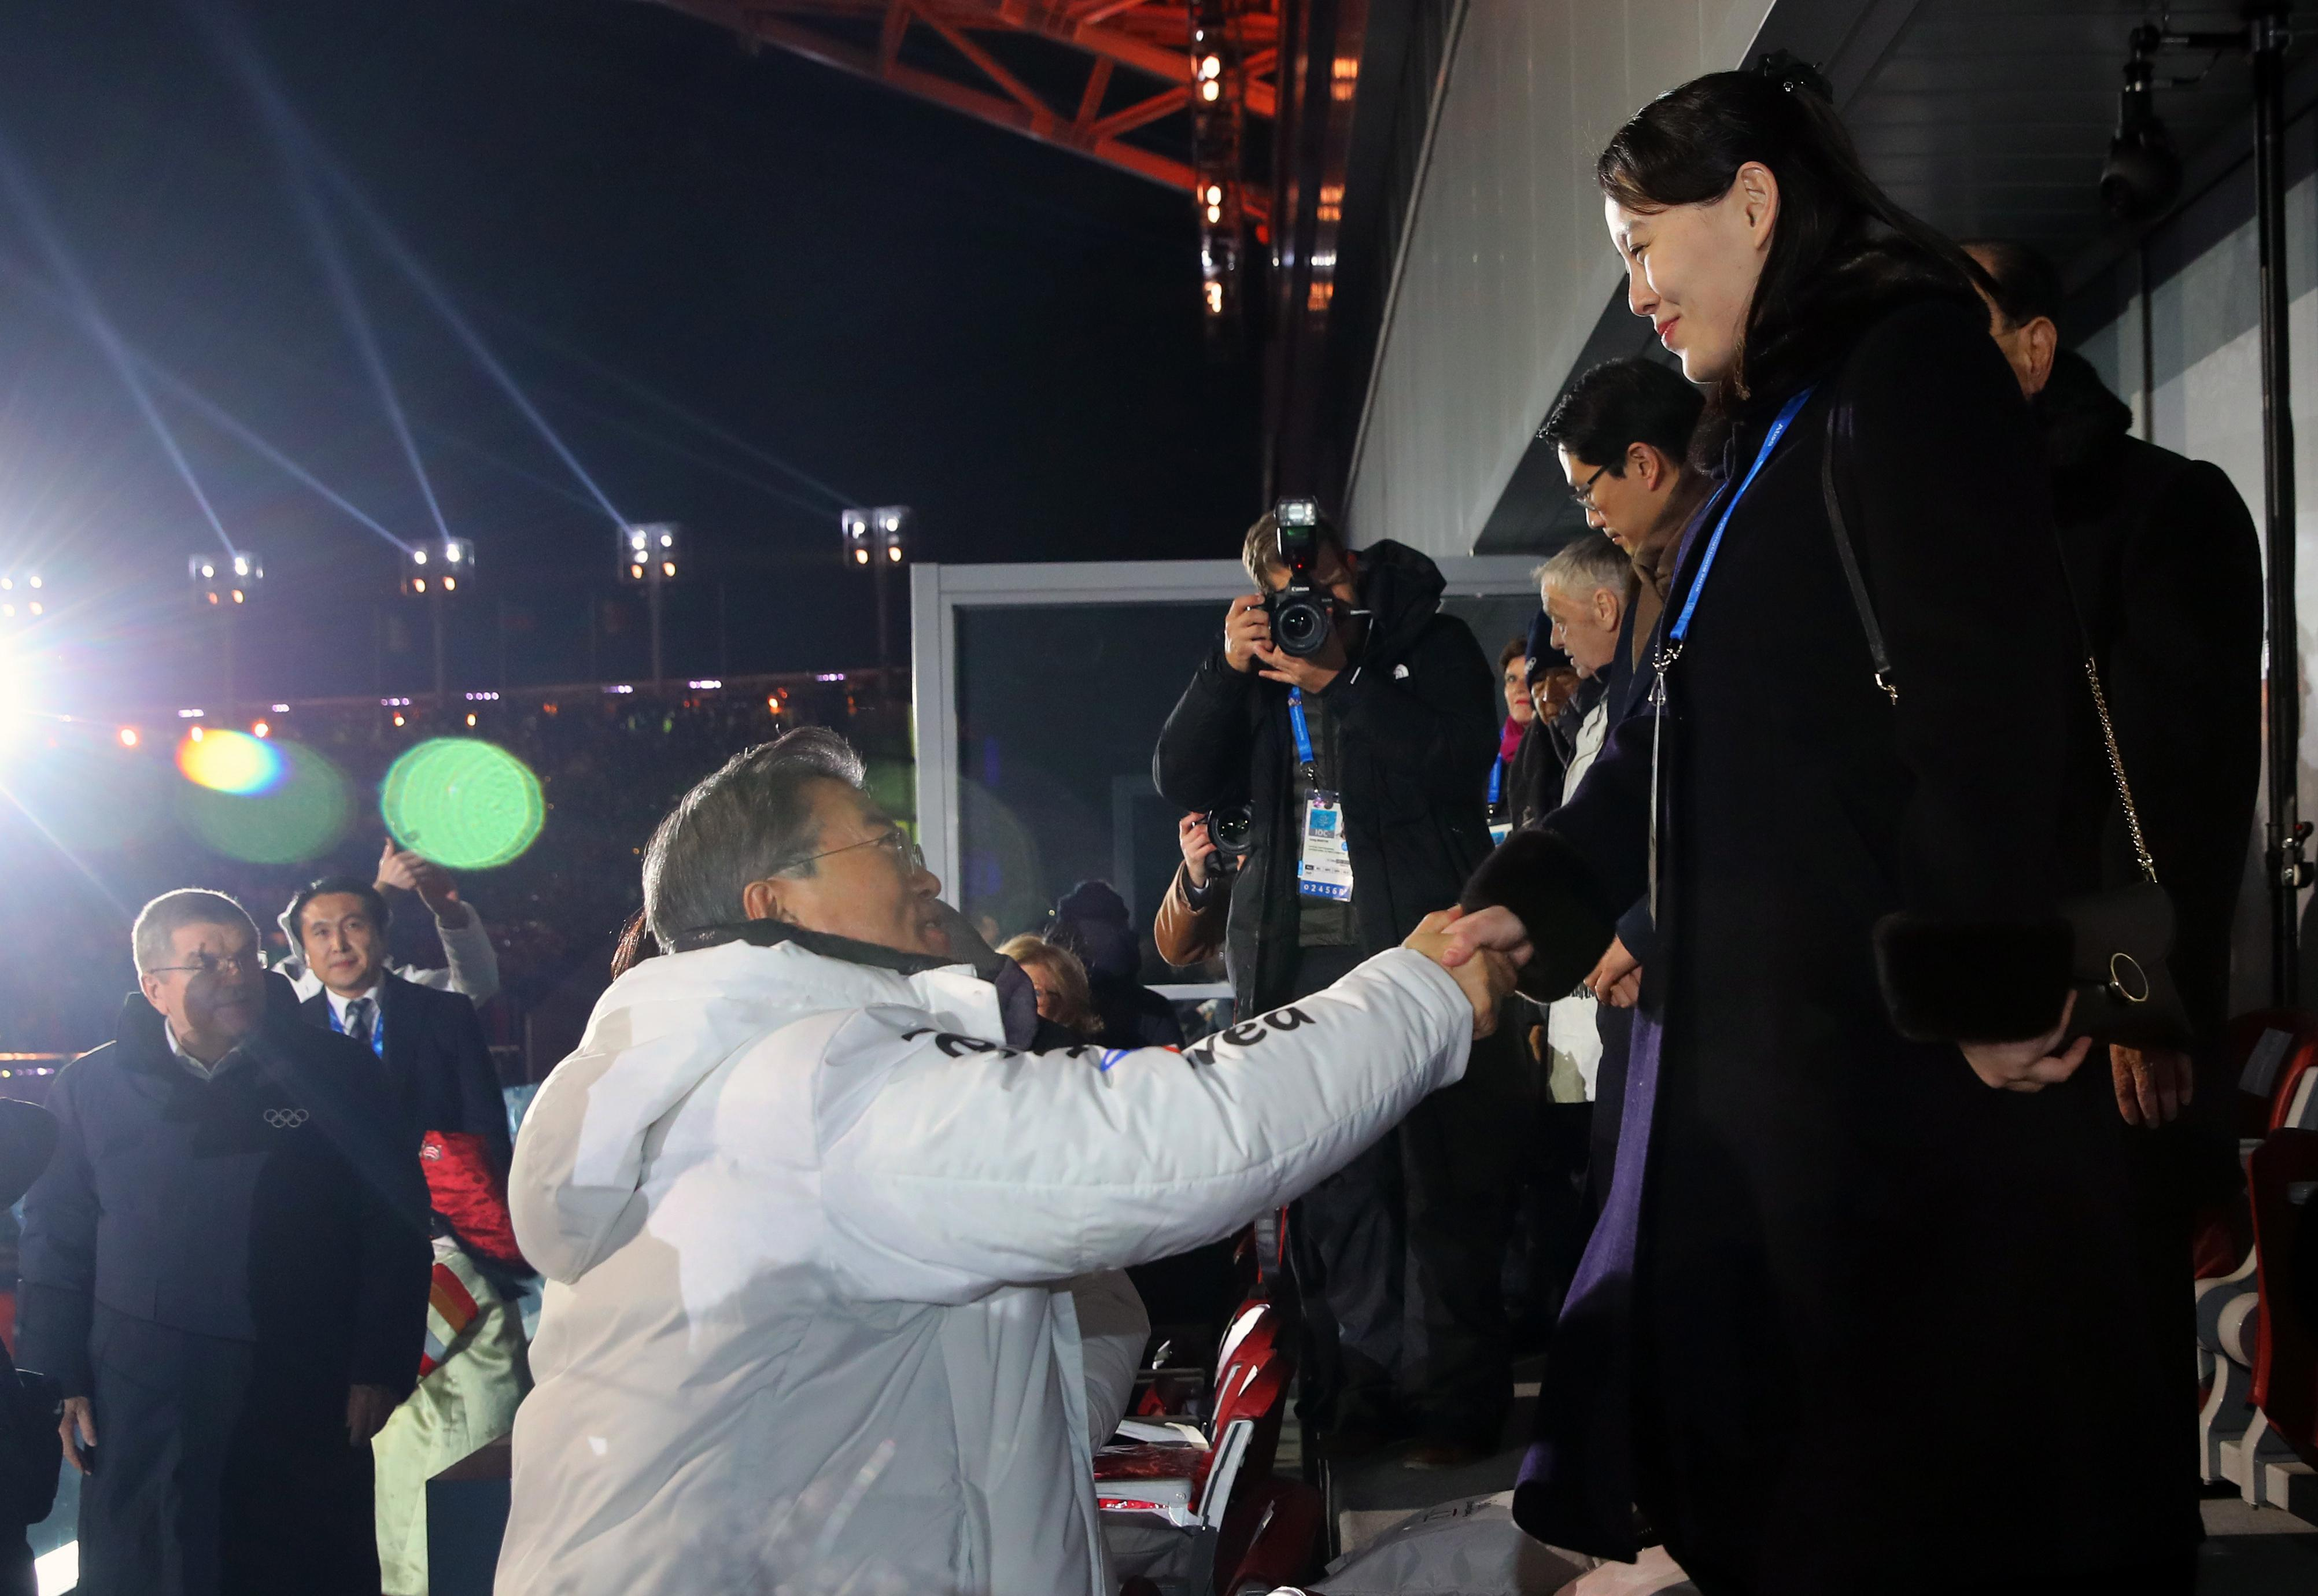 South Korean President Moon Jae-in, left, shakes hands with North Korean leader Kim Jong Un's younger sister Kim Yo Jong during the opening ceremony of the 2018 Winter Olympics in Pyeongchang, South Korea, Friday, Feb. 9, 2018. (Kim Ju-sung/Yonhap via AP)